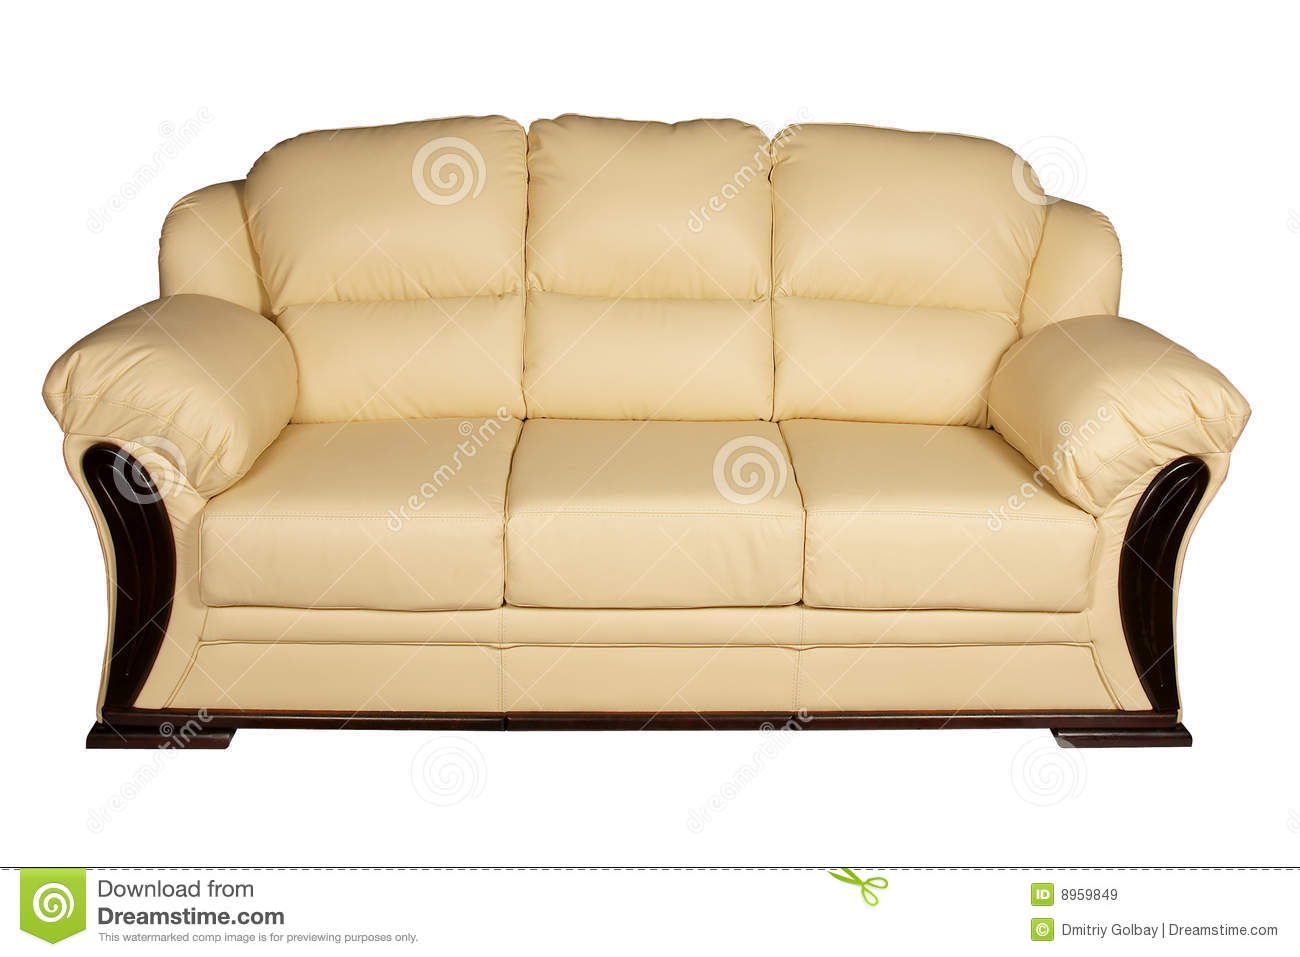 cream leather sofa stock image image of comfort colored 8959849. Black Bedroom Furniture Sets. Home Design Ideas